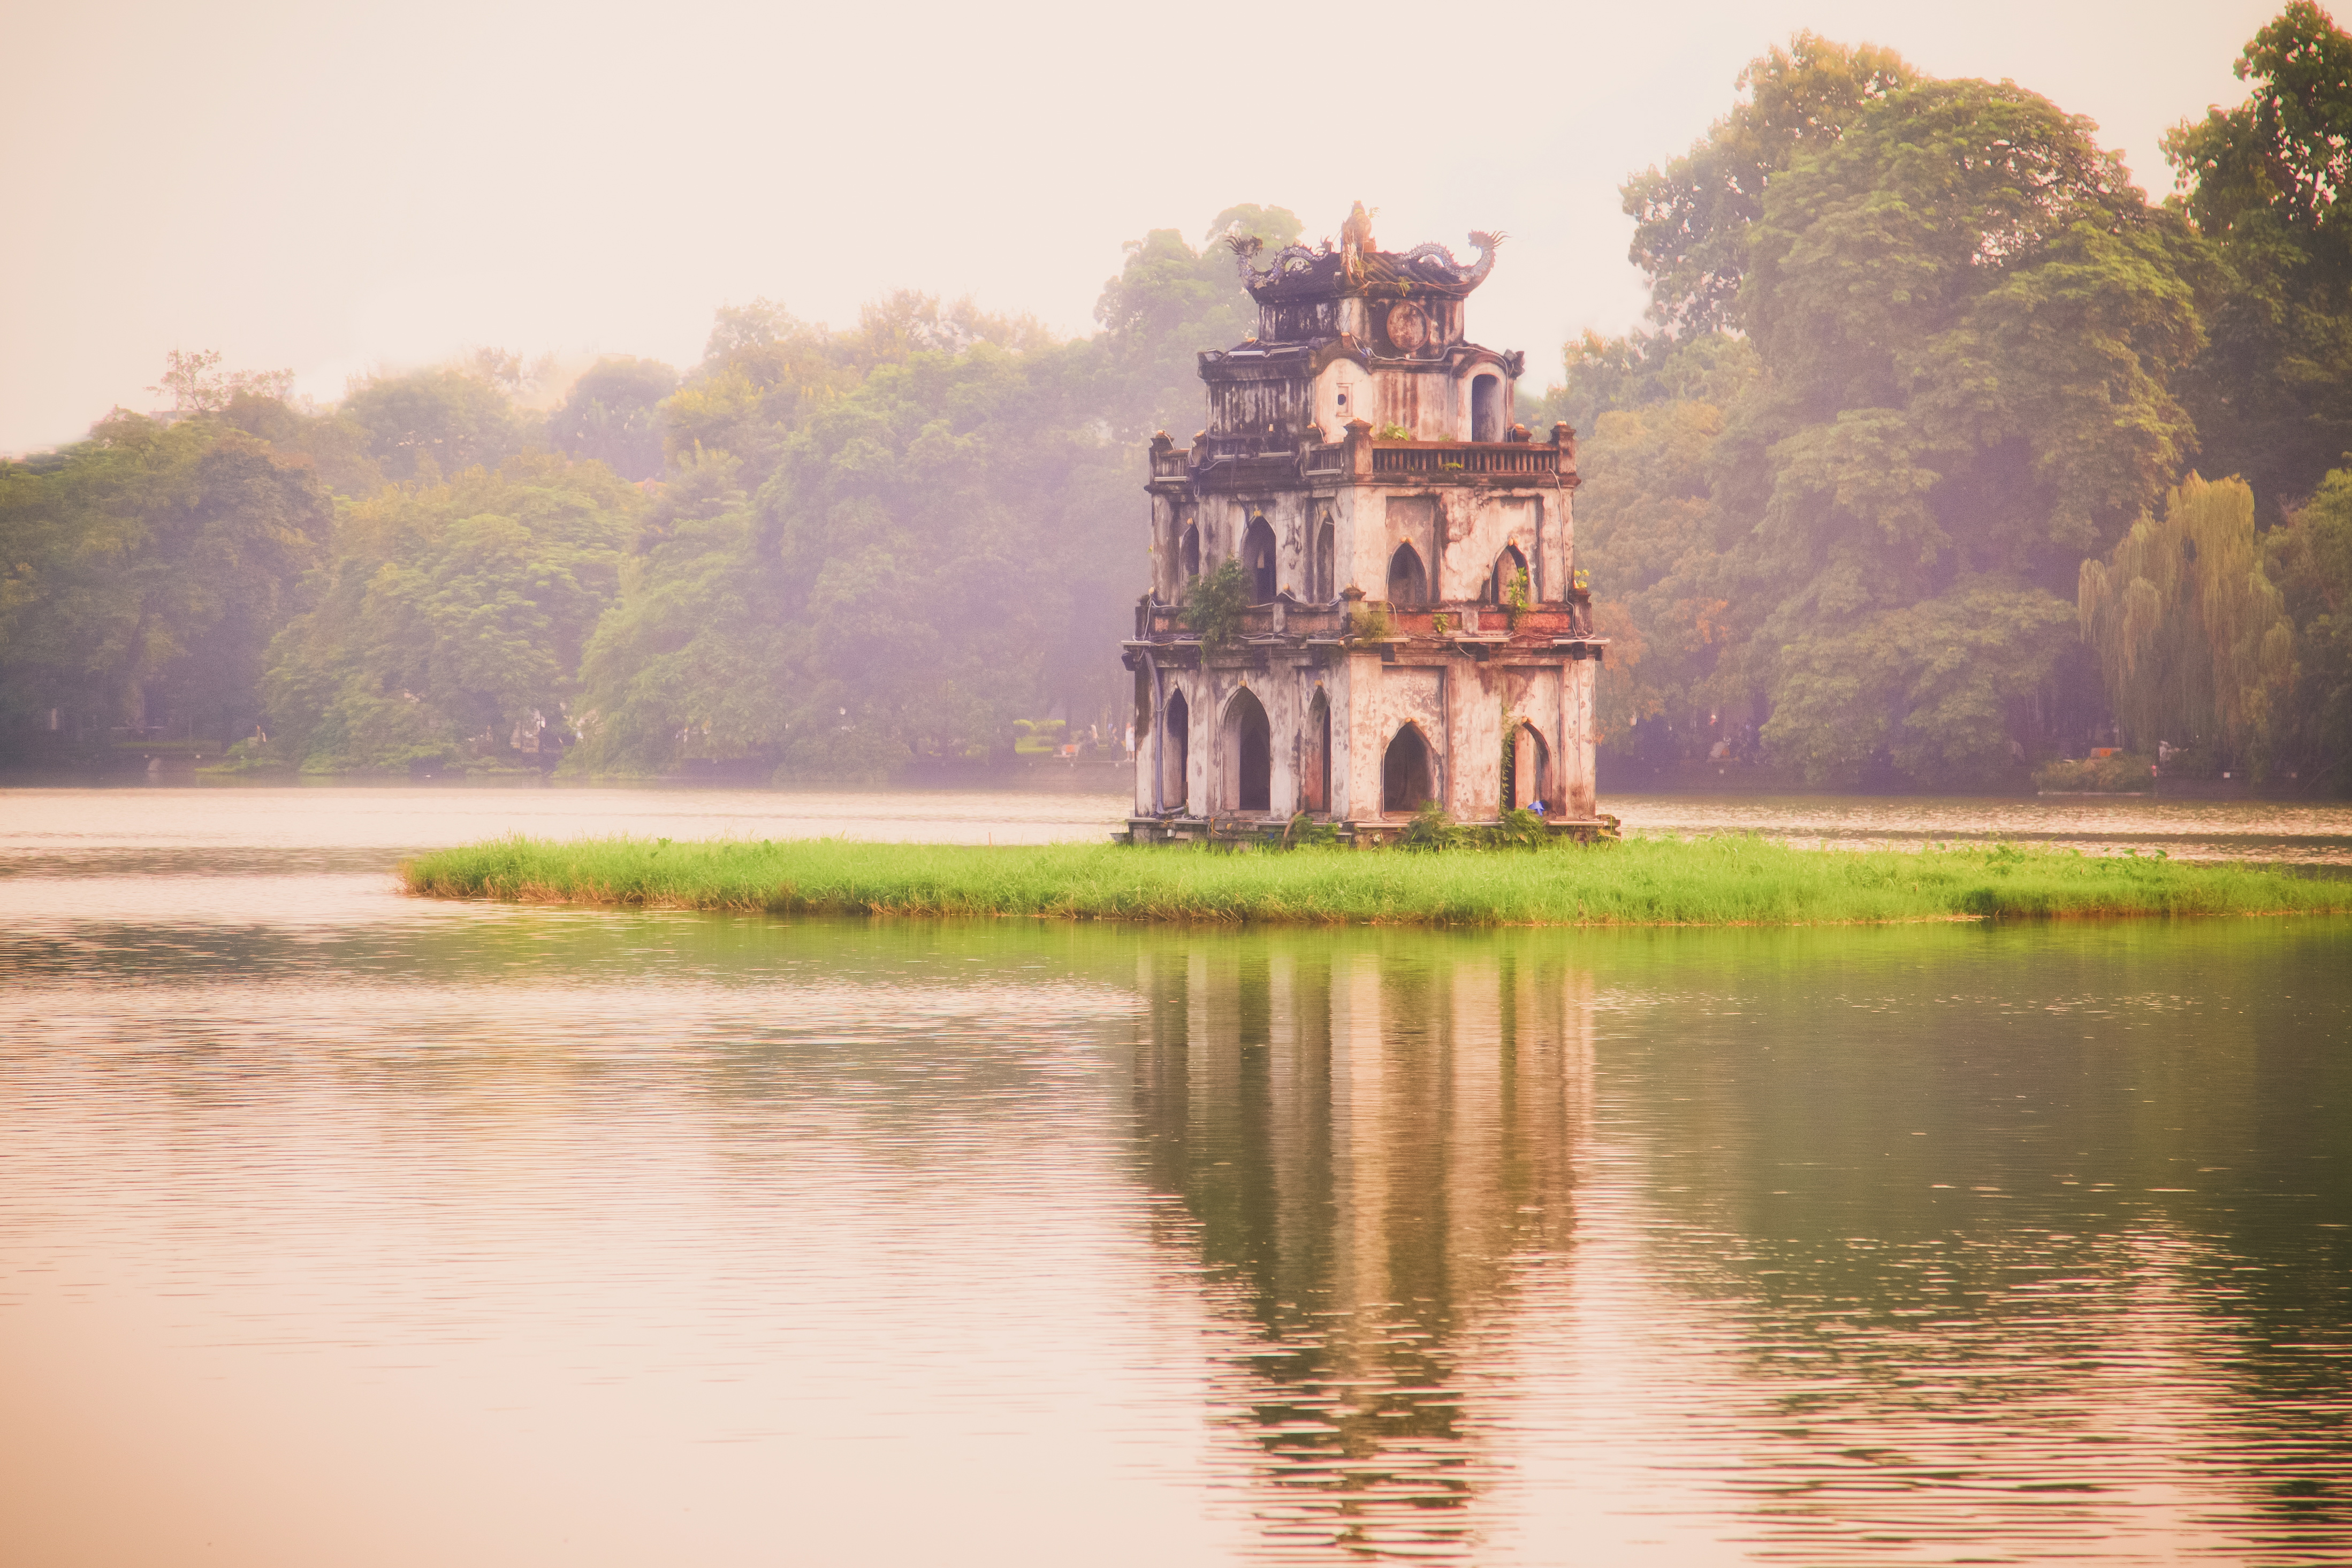 500px Photo ID: 59308186 - Hoan Kiem Lake is in the center of the capital city, Hanoi.